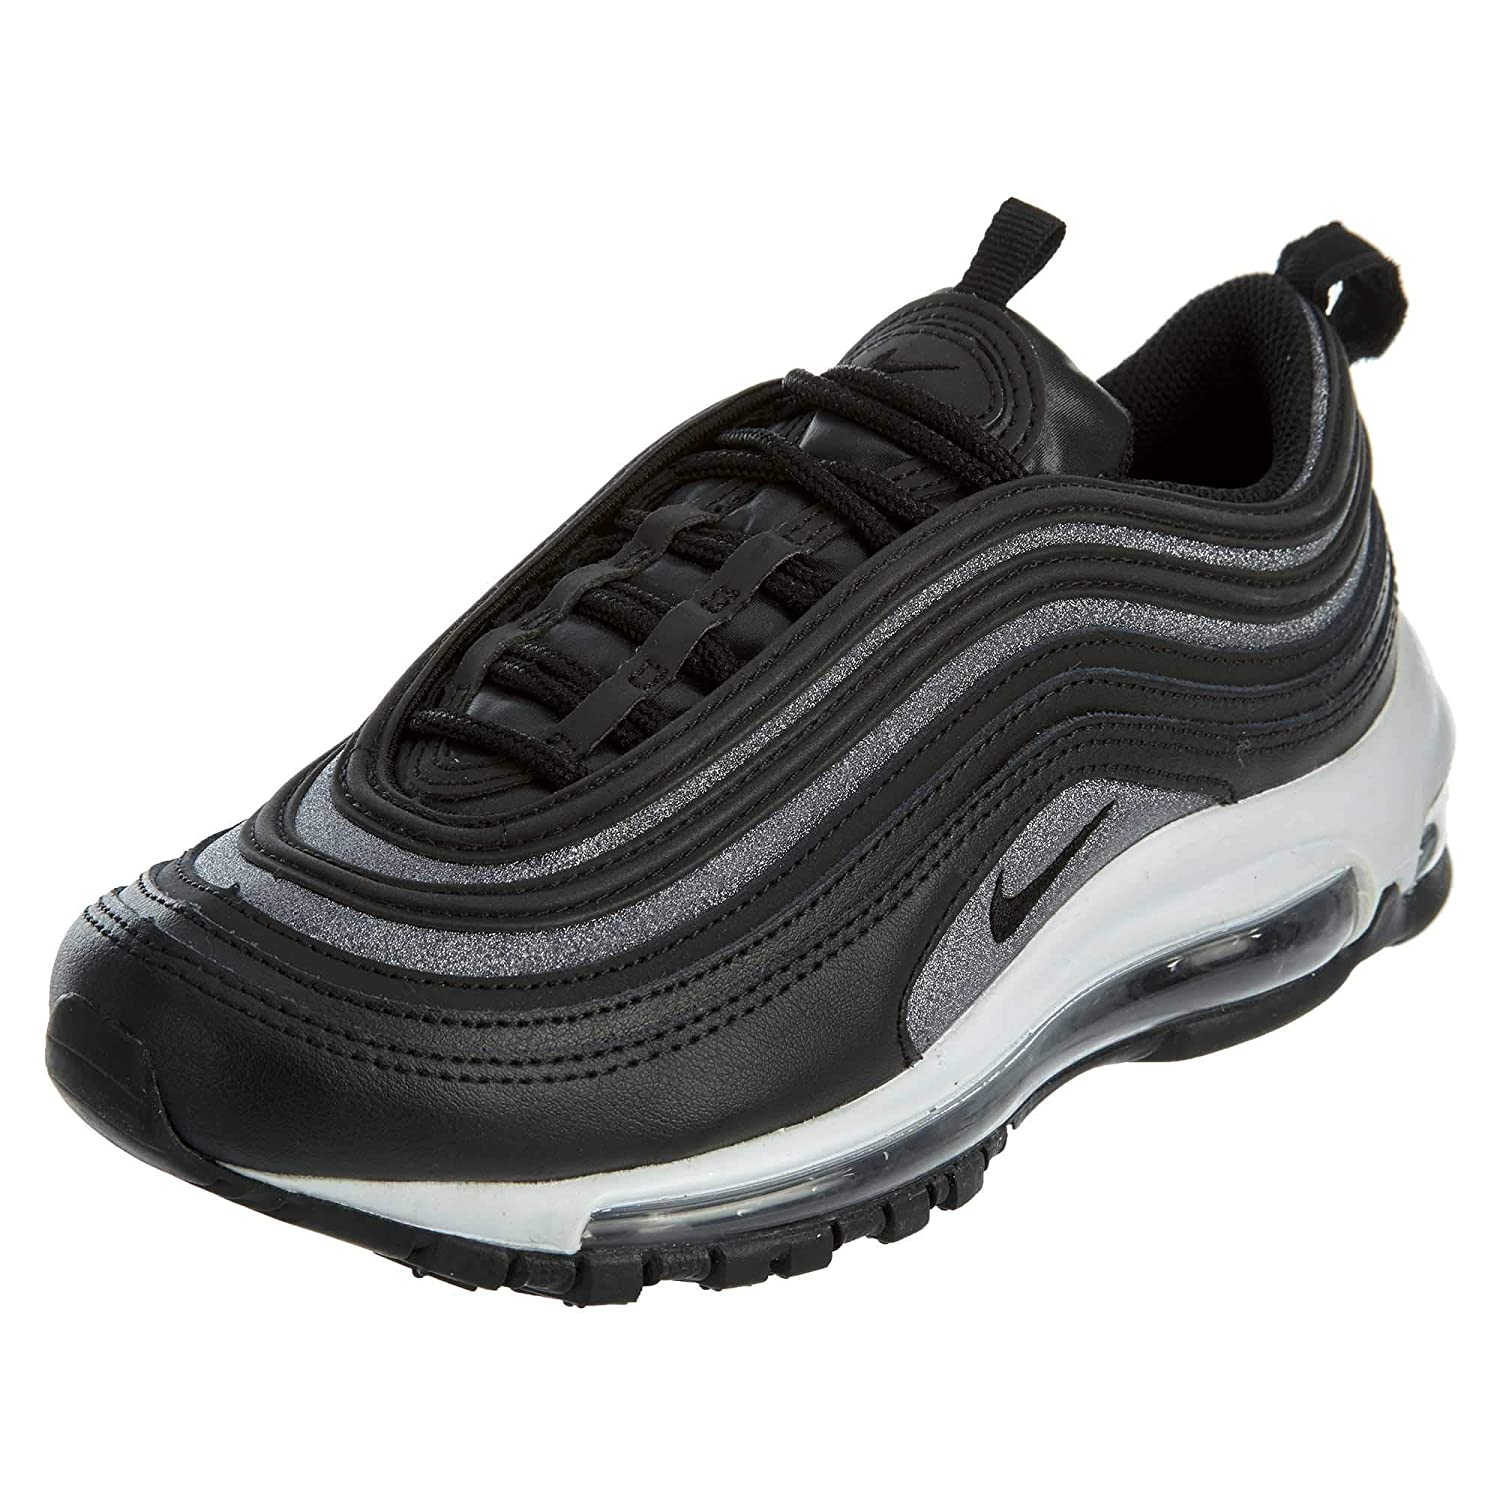 designer fashion 2511b 5dc59 Amazon.com | Nike Air Max 97 Glitter Black White Running ...